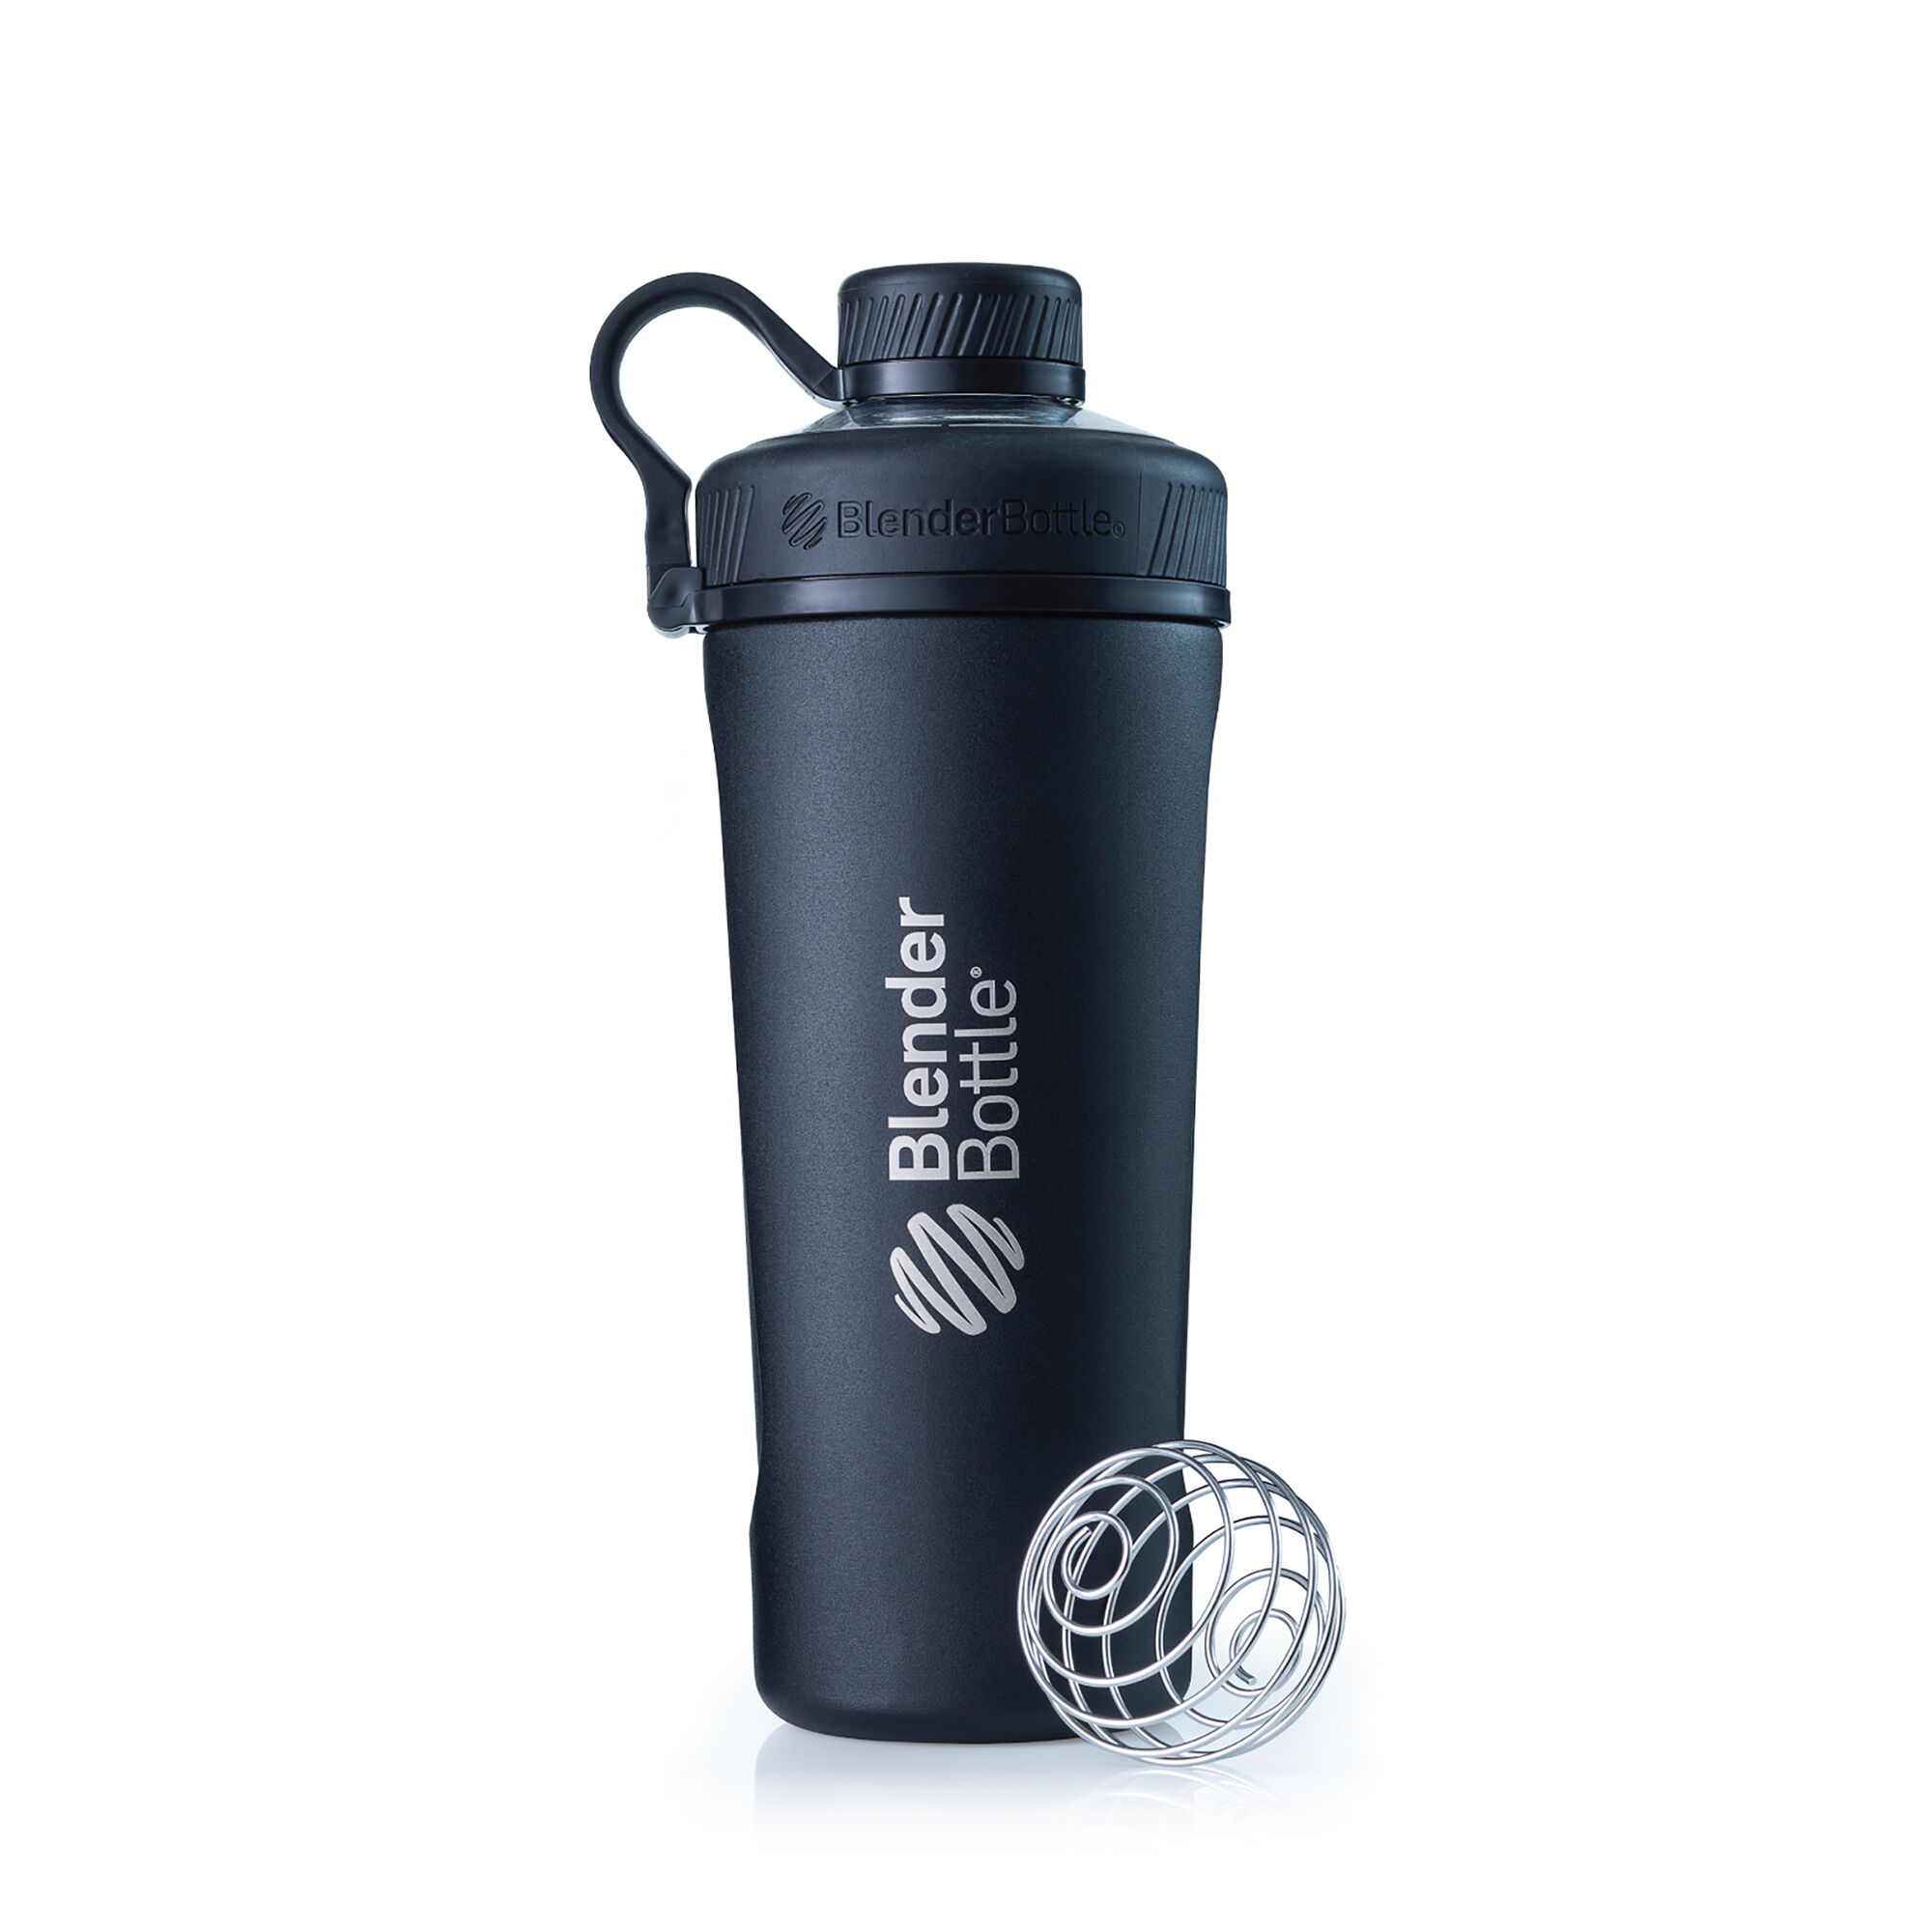 BlenderbottleRadiang Insulated Stainless Steel Matte Black Mixers Shakers And Bottles